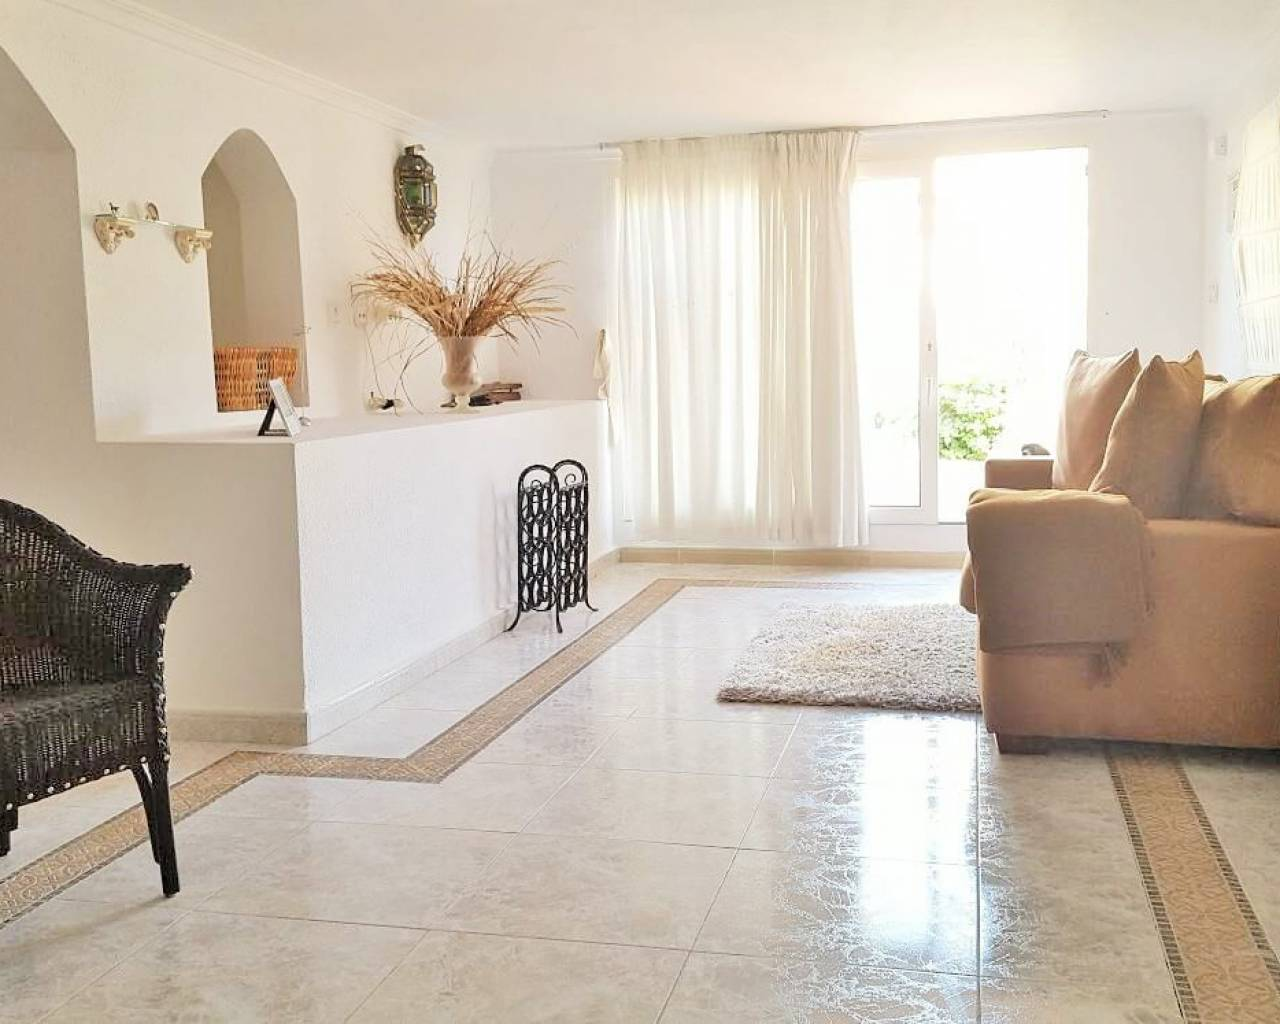 Revente - Luxury Villa - Playa Flamenca